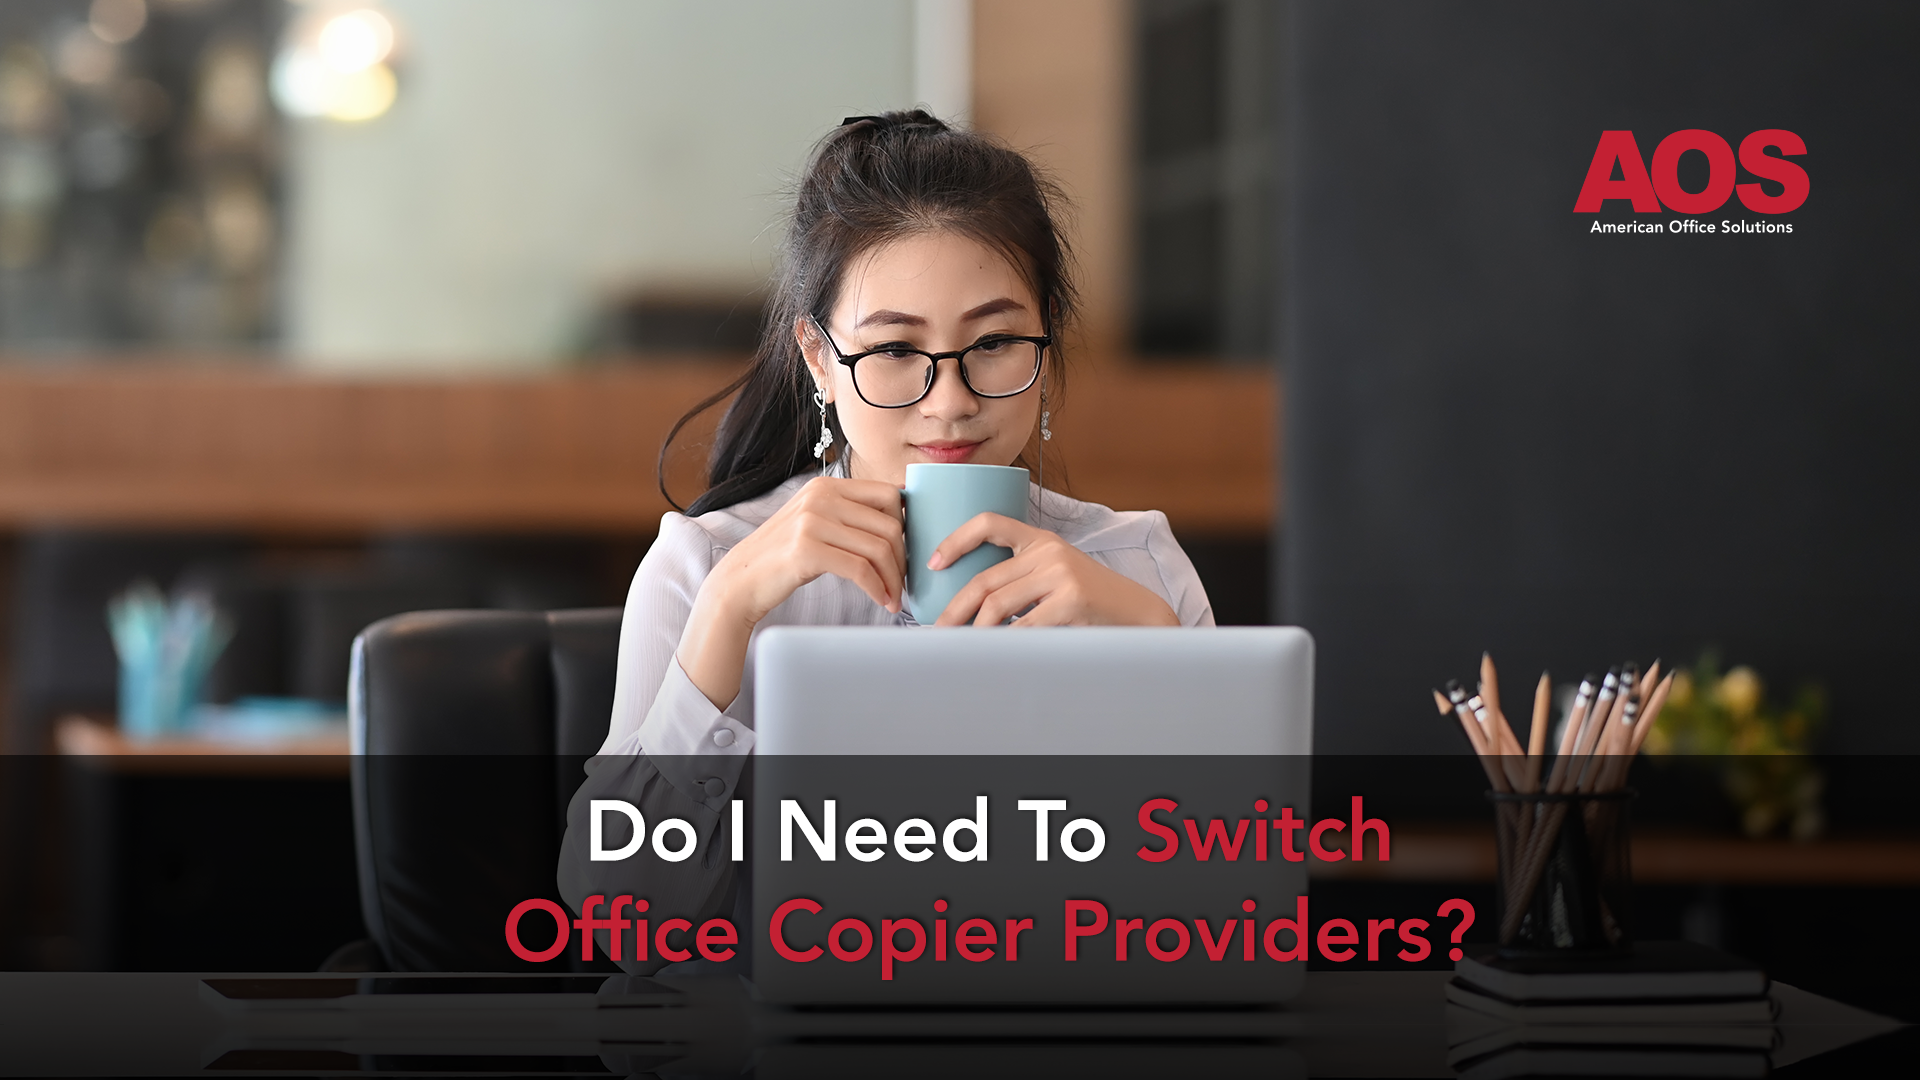 Do I Need to Switch Office Copier Providers?